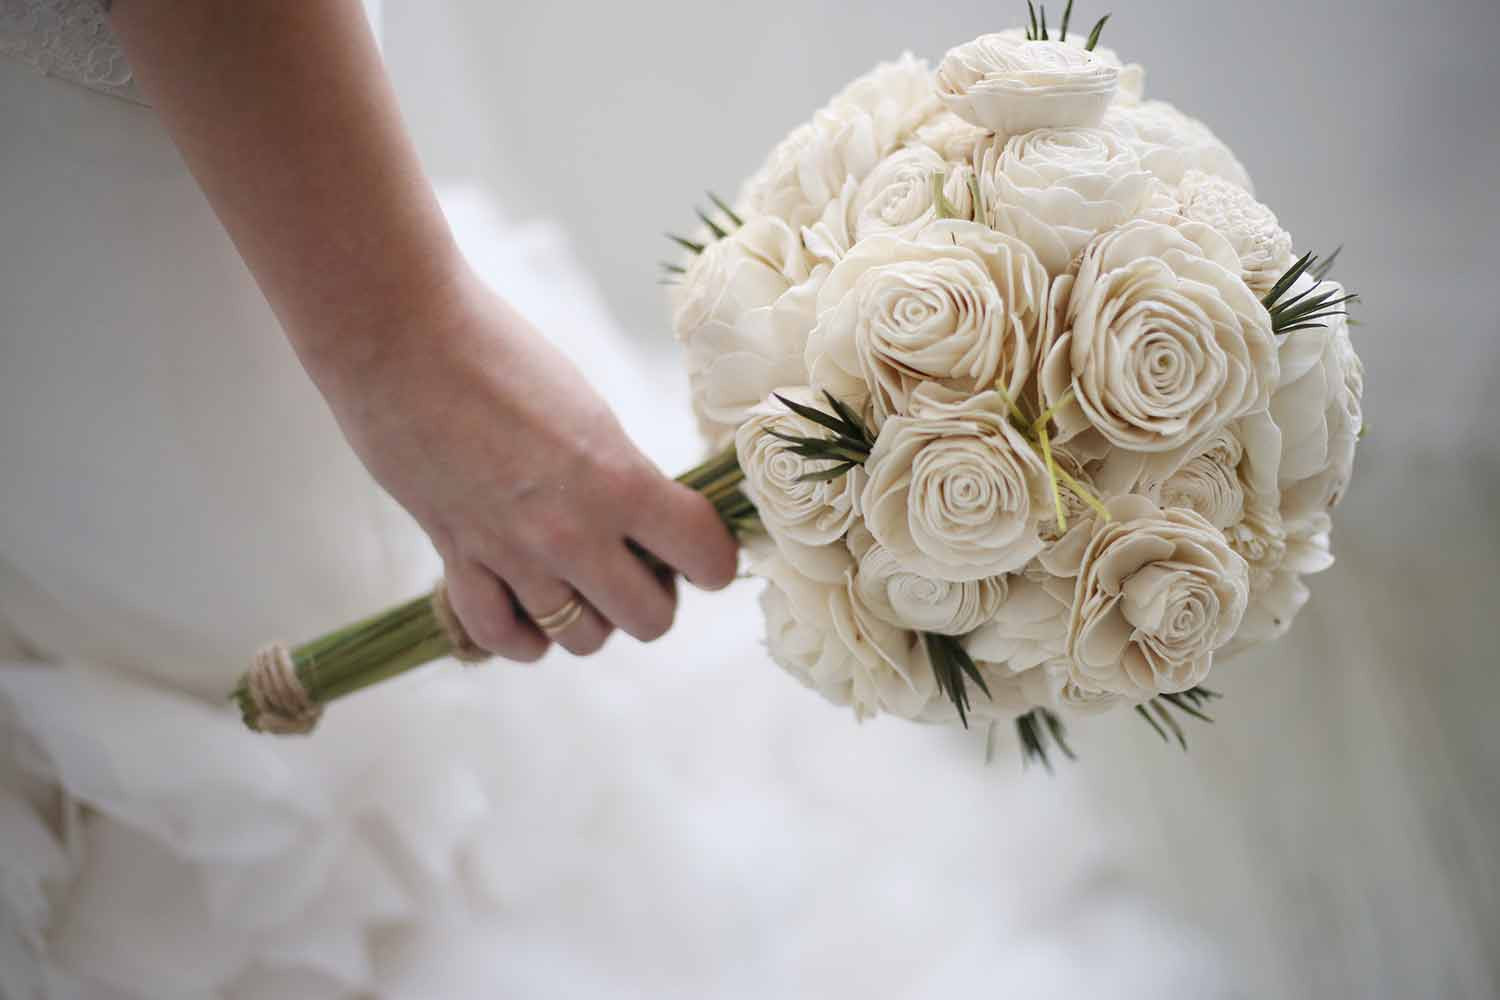 Greek Goddess Bridal Bouquet